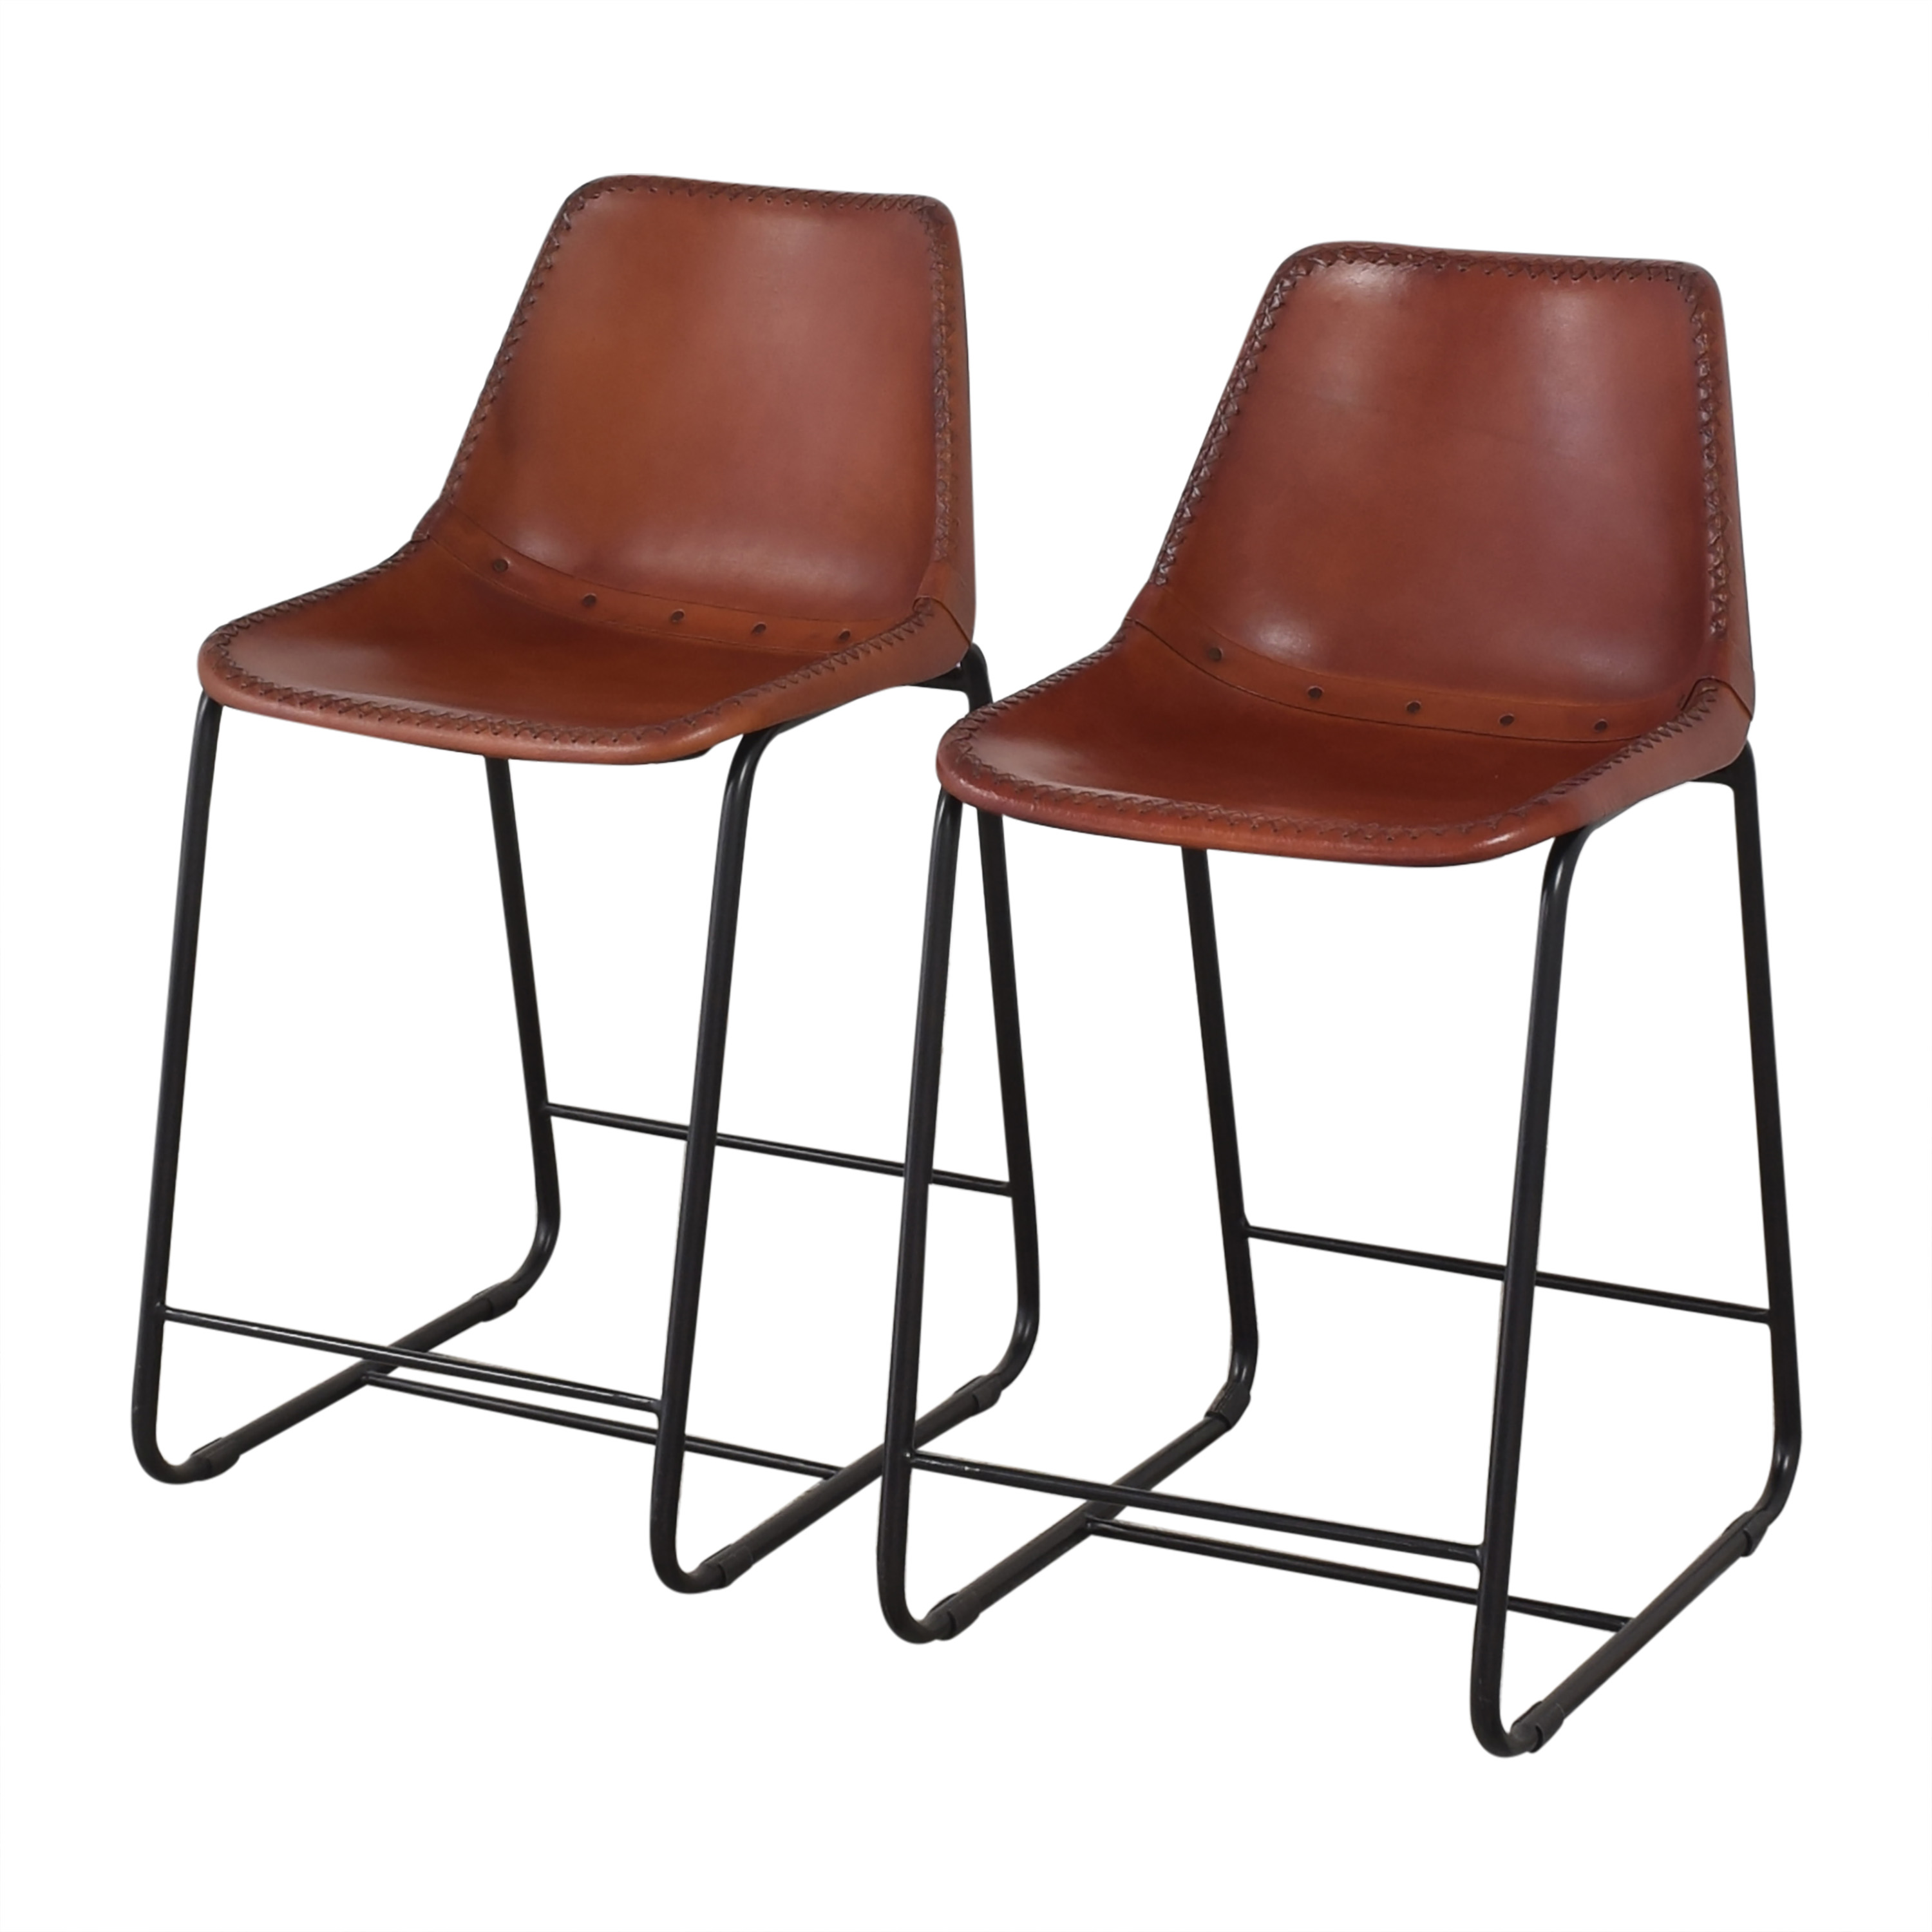 CB2 CB2 Roadhouse Counter Stools brown and black